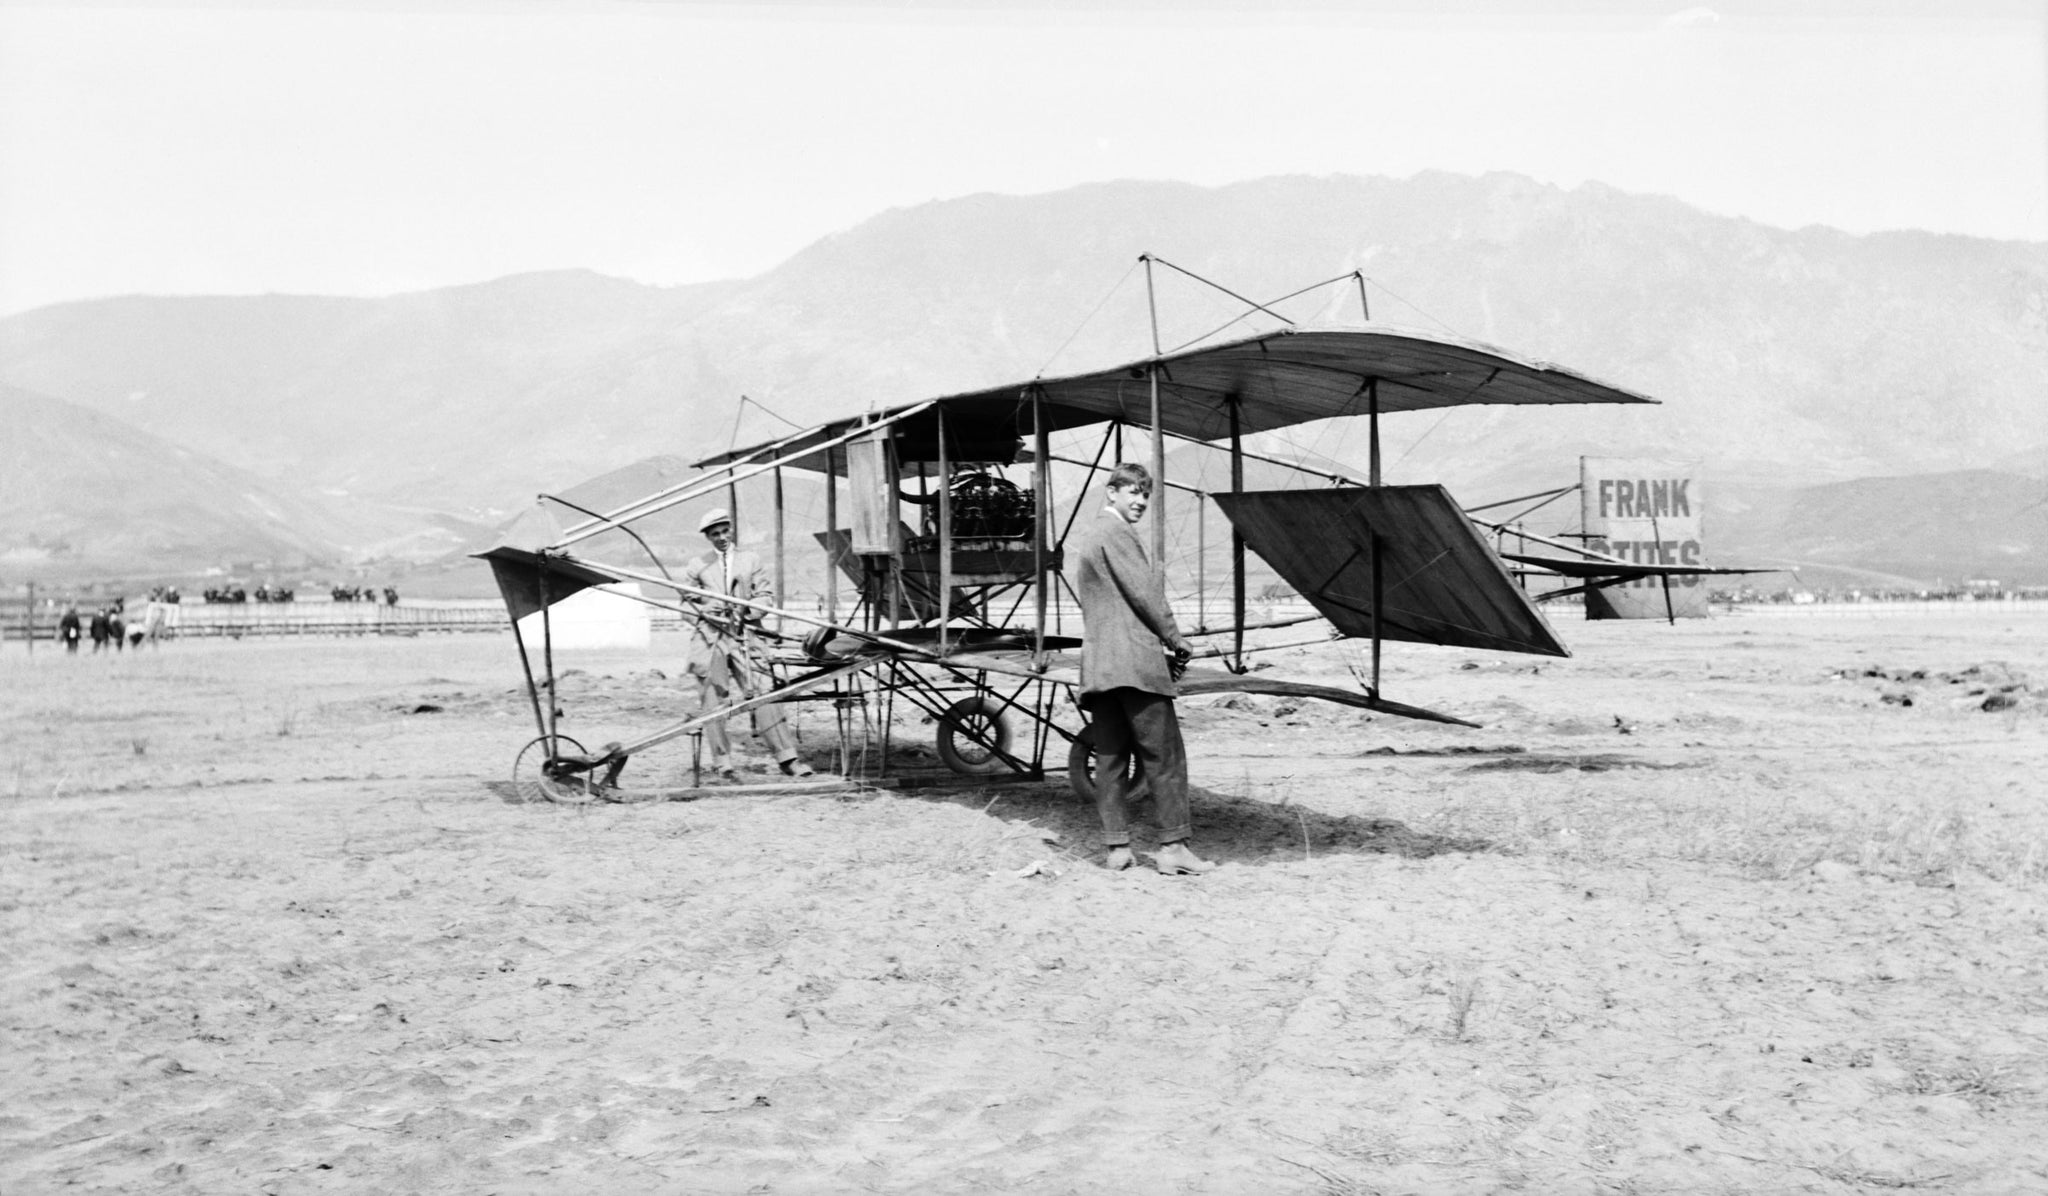 Eugene Ely with his biplane. He flew in Butte on June 9, 1911. When he landed, he plowed into the fairgrounds and damaged the tires on his airplane. -- Mike Byrnes Collection